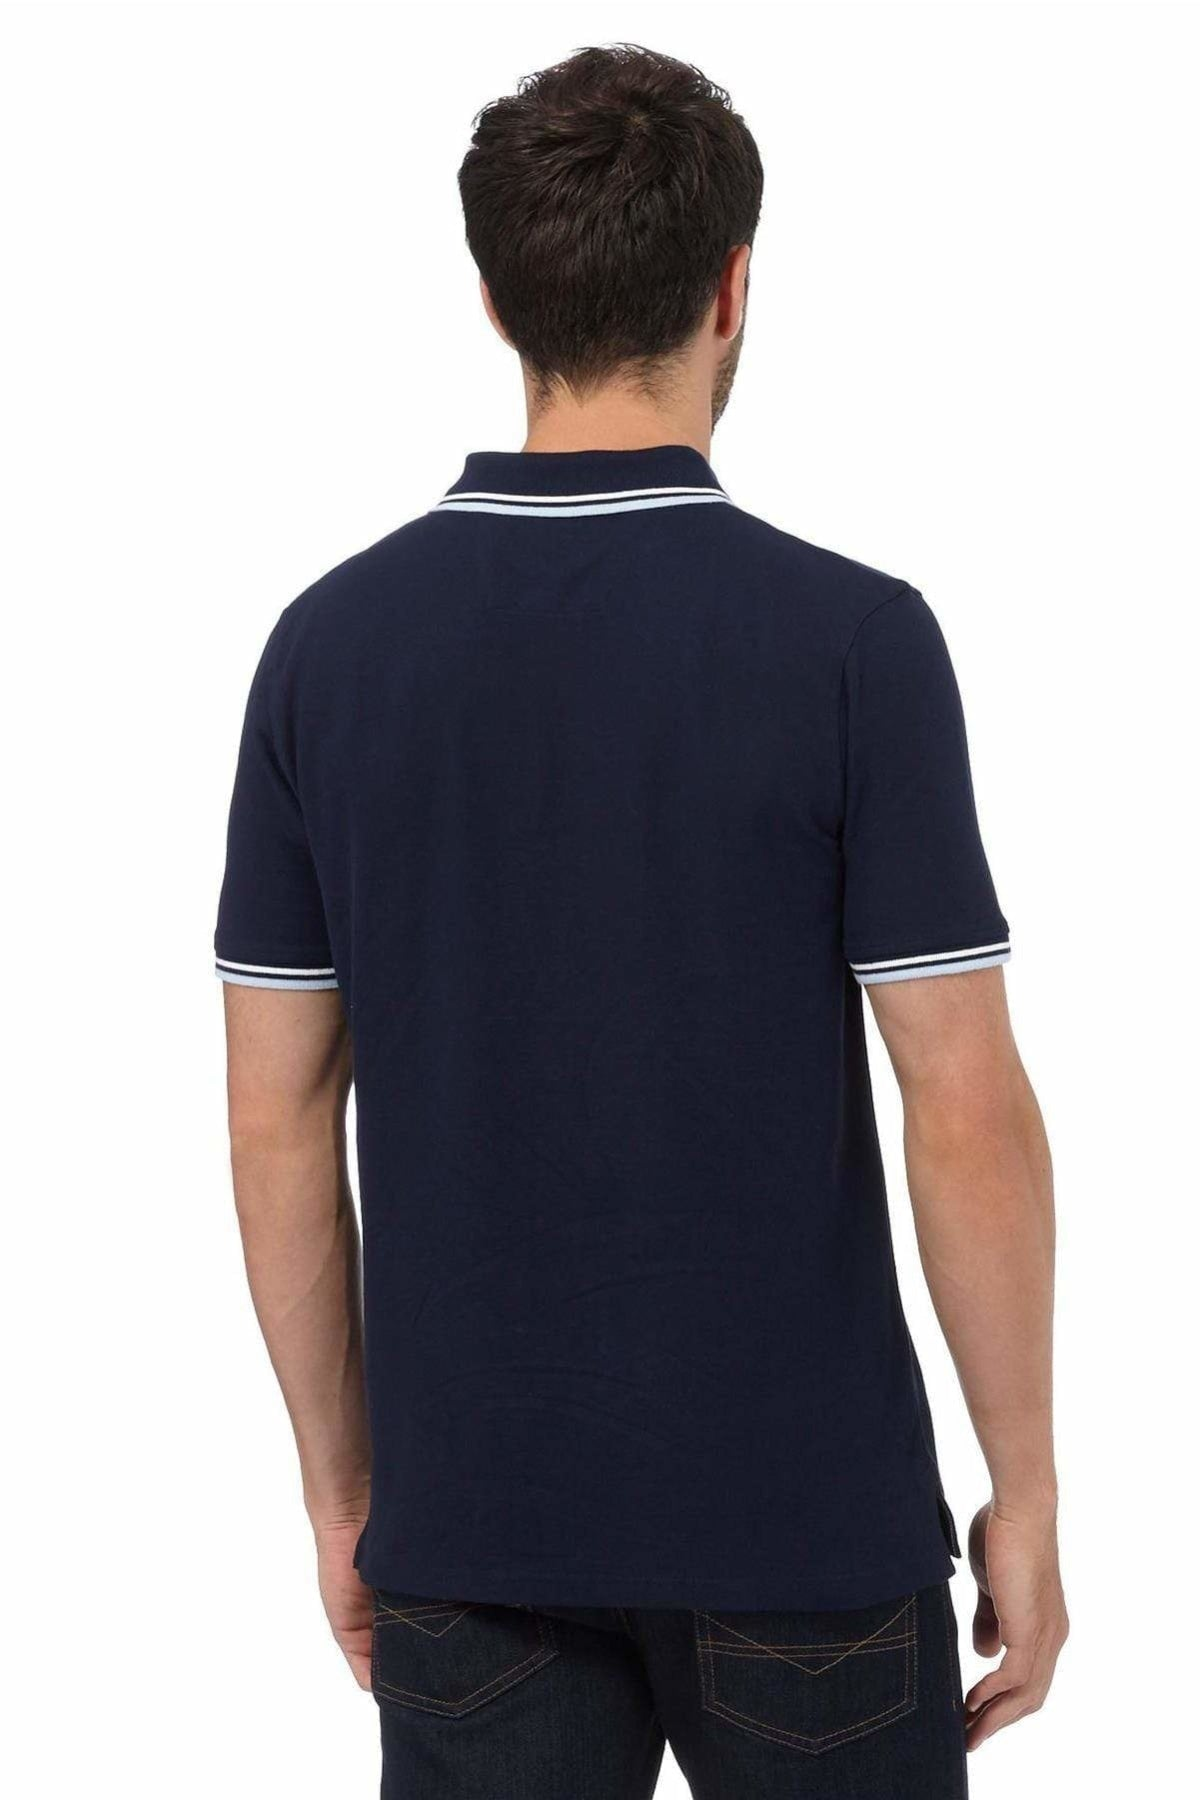 MAINE New England MAINE New England Mens Polo Shirt Tipped Collar | L / Navy Secret Label